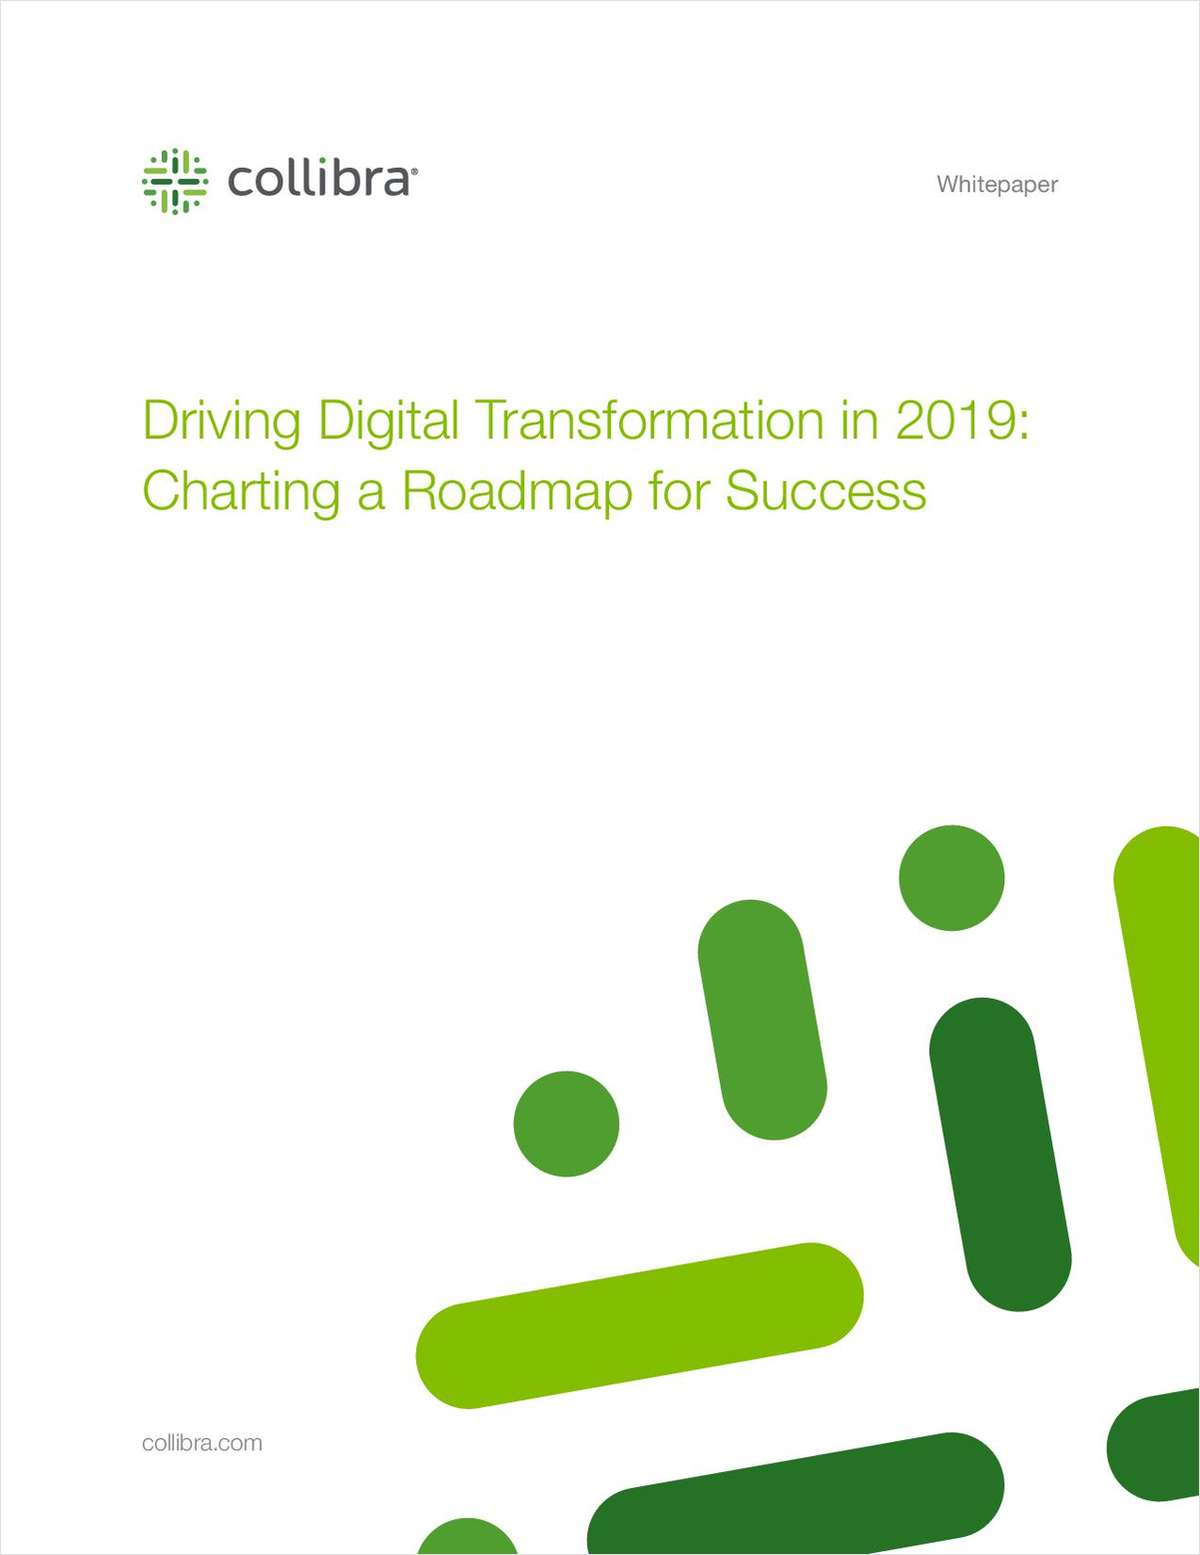 Driving Digital Transformation in 2019: Charting a Roadmap for Success